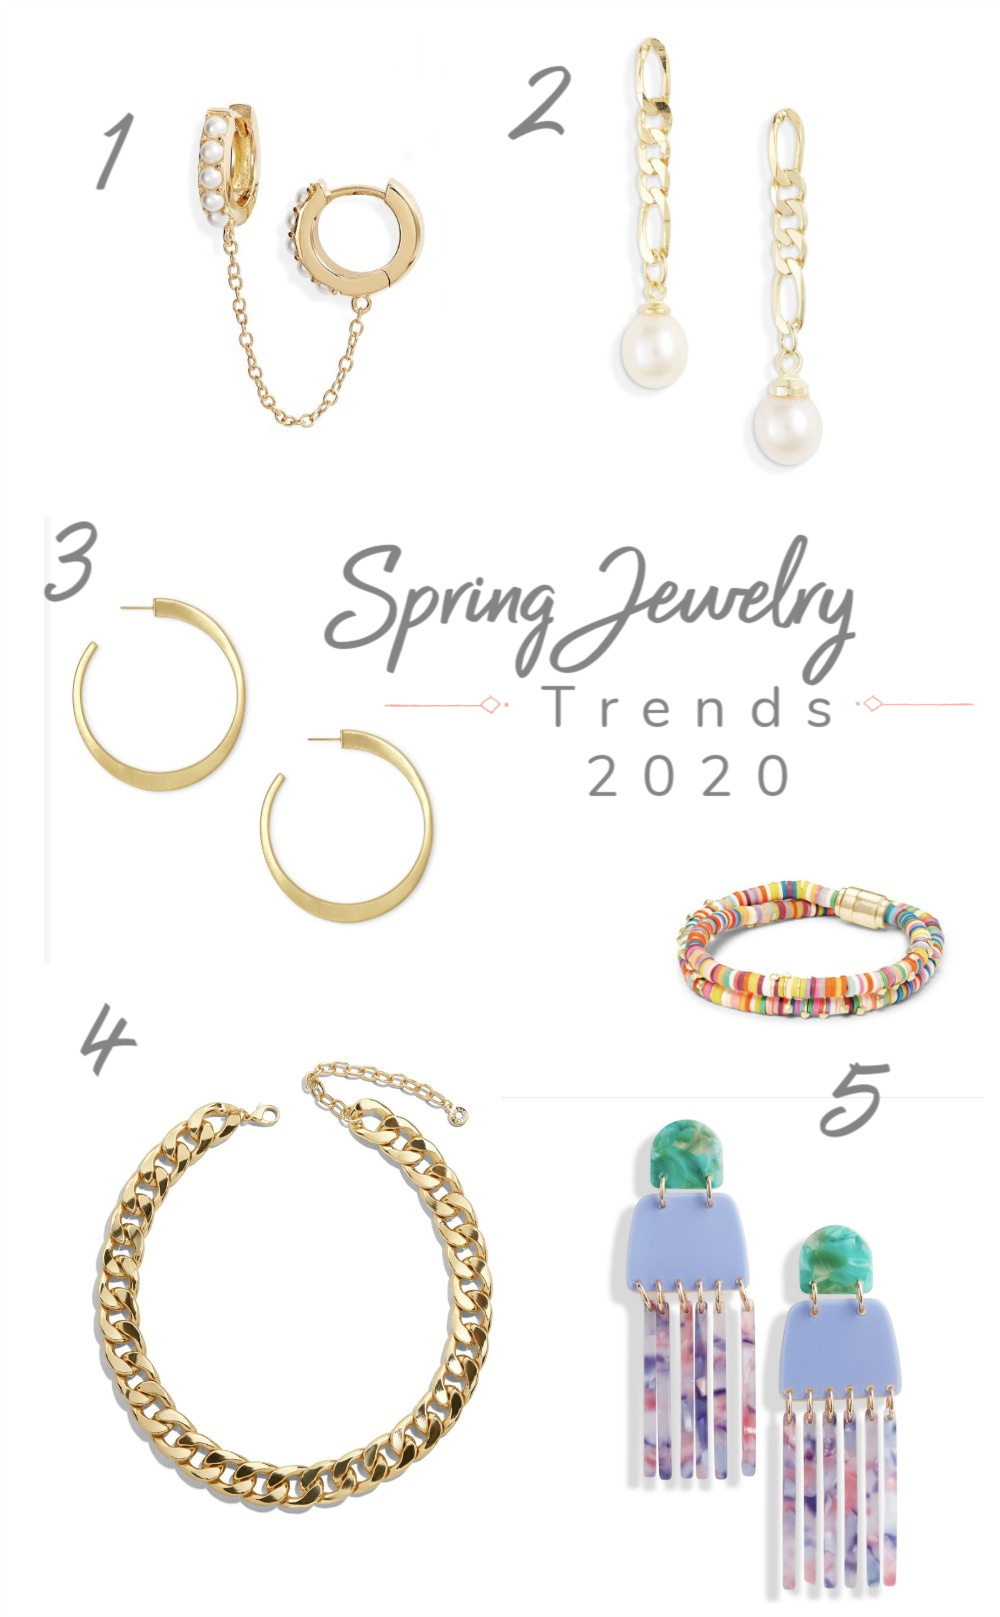 Spring Jewelry Trends in 2020